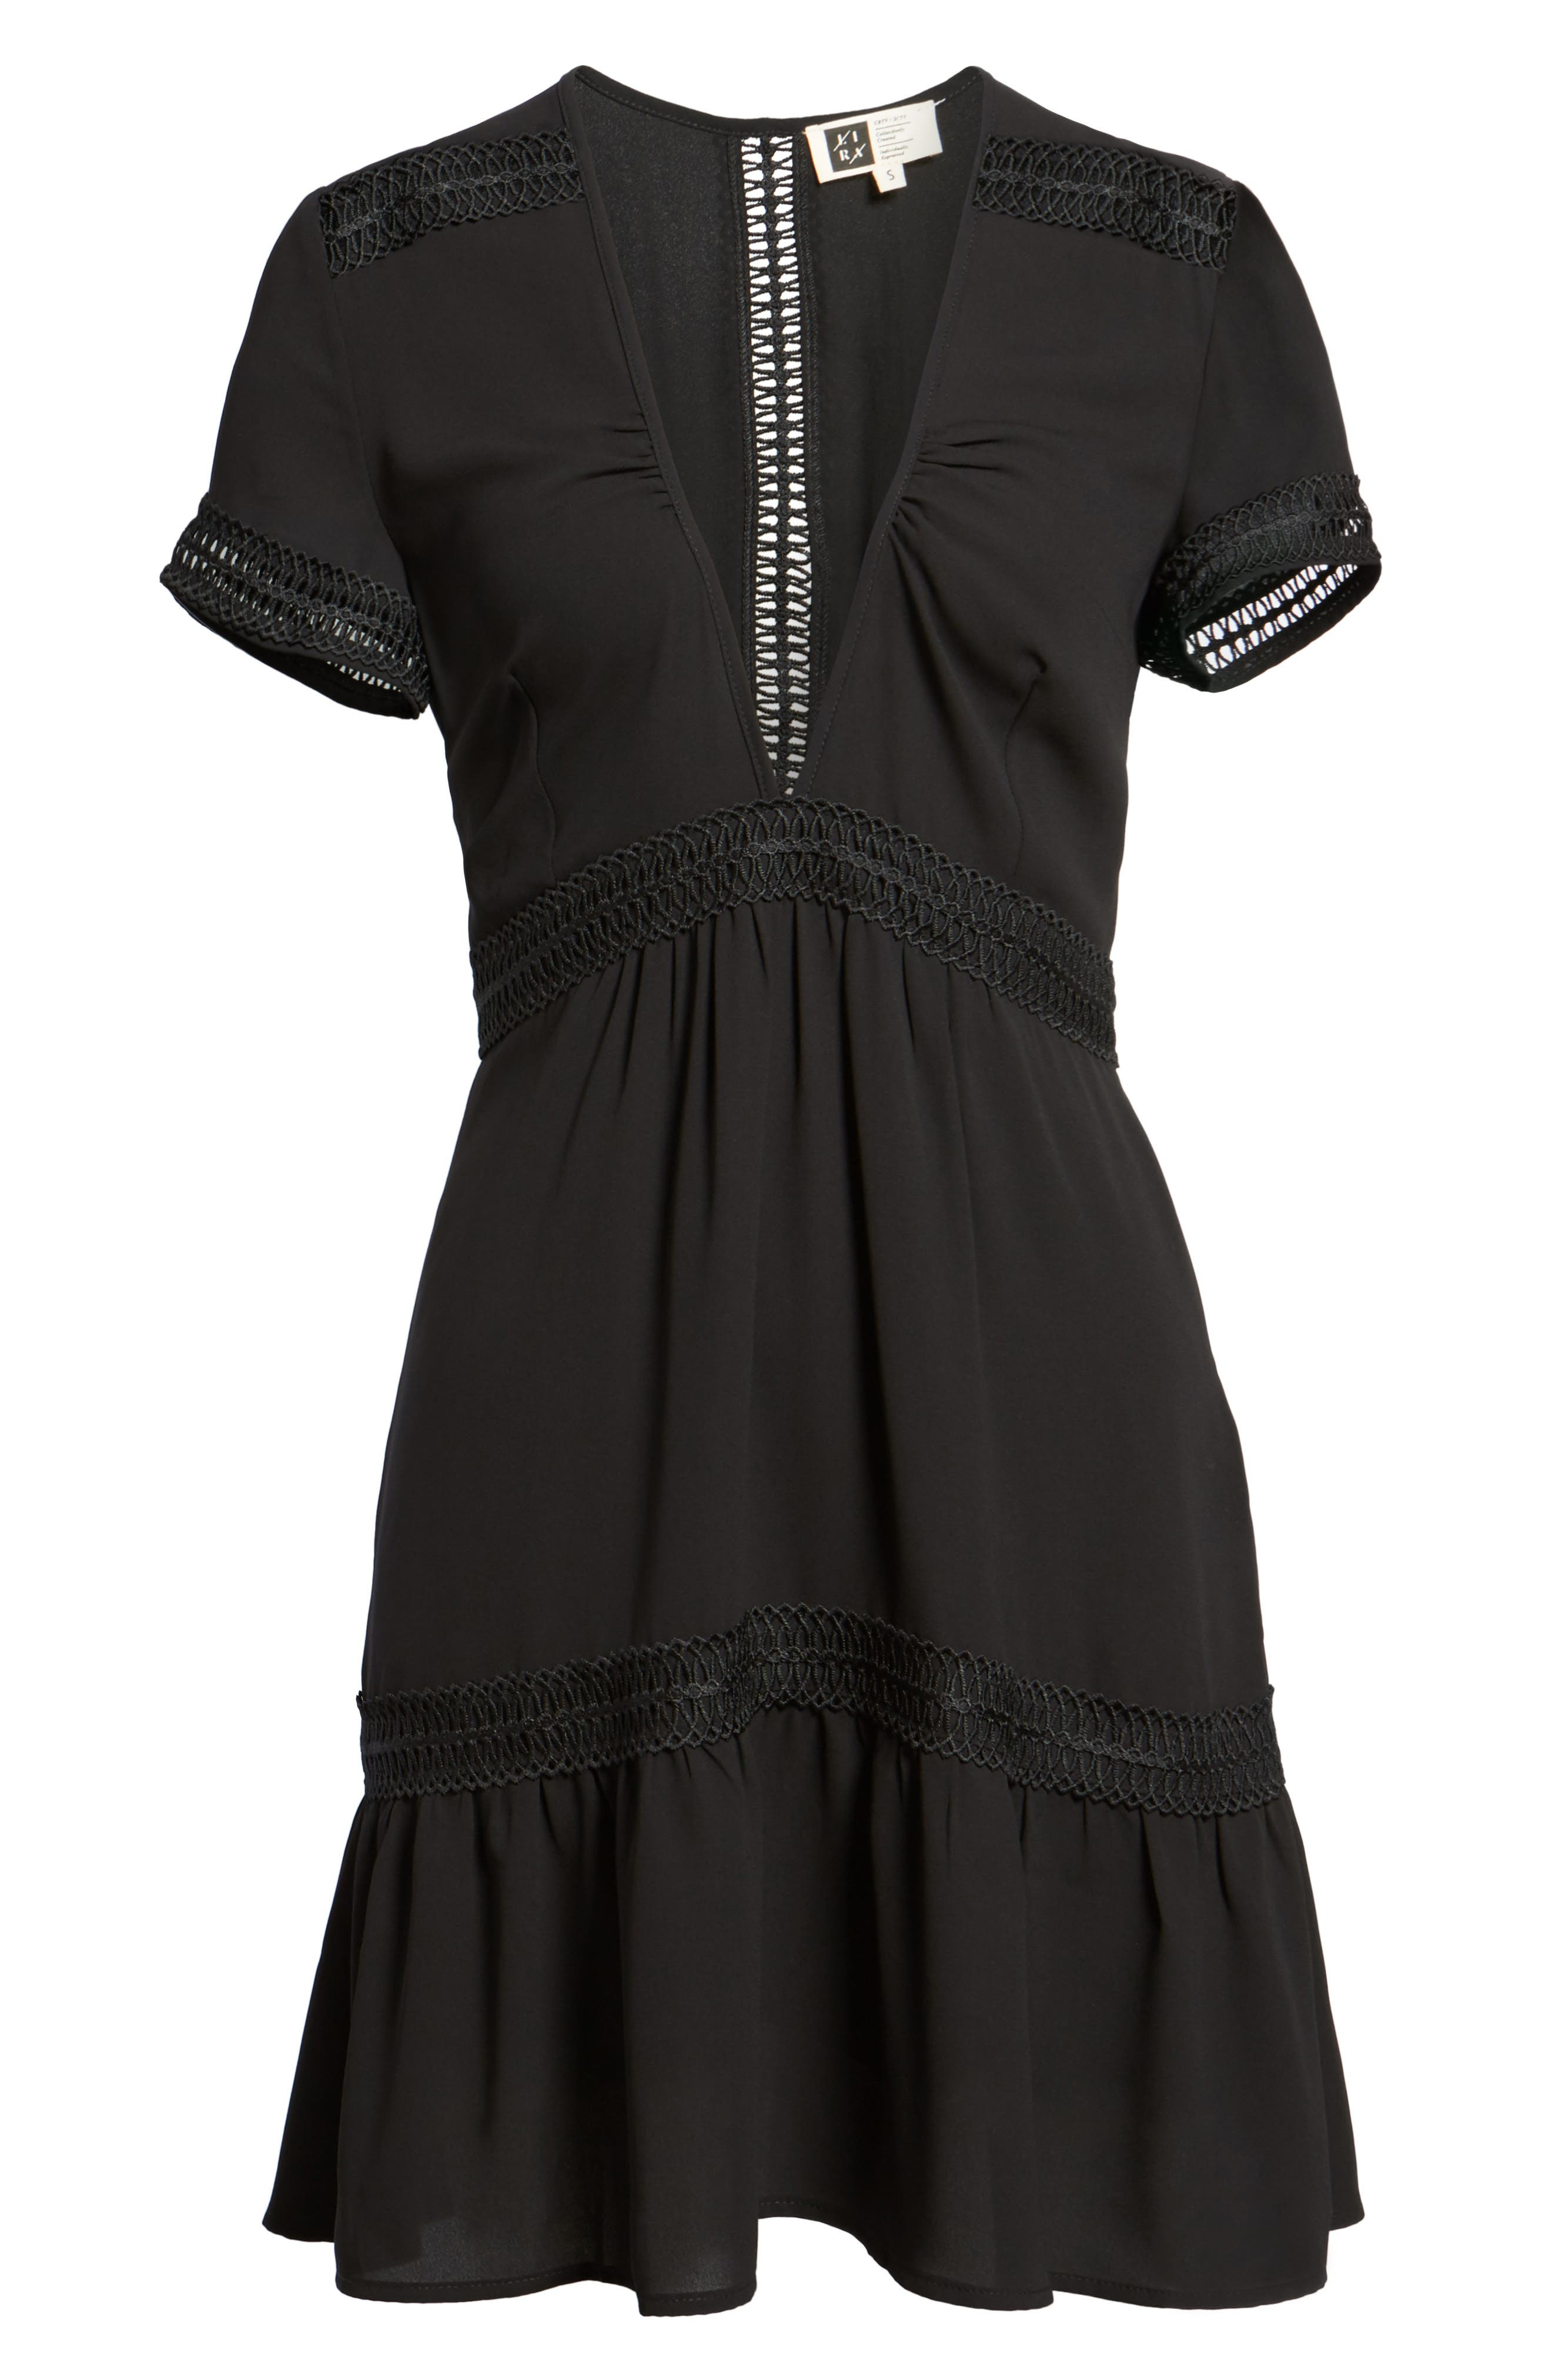 Take Hold Tiered Dress,                             Alternate thumbnail 11, color,